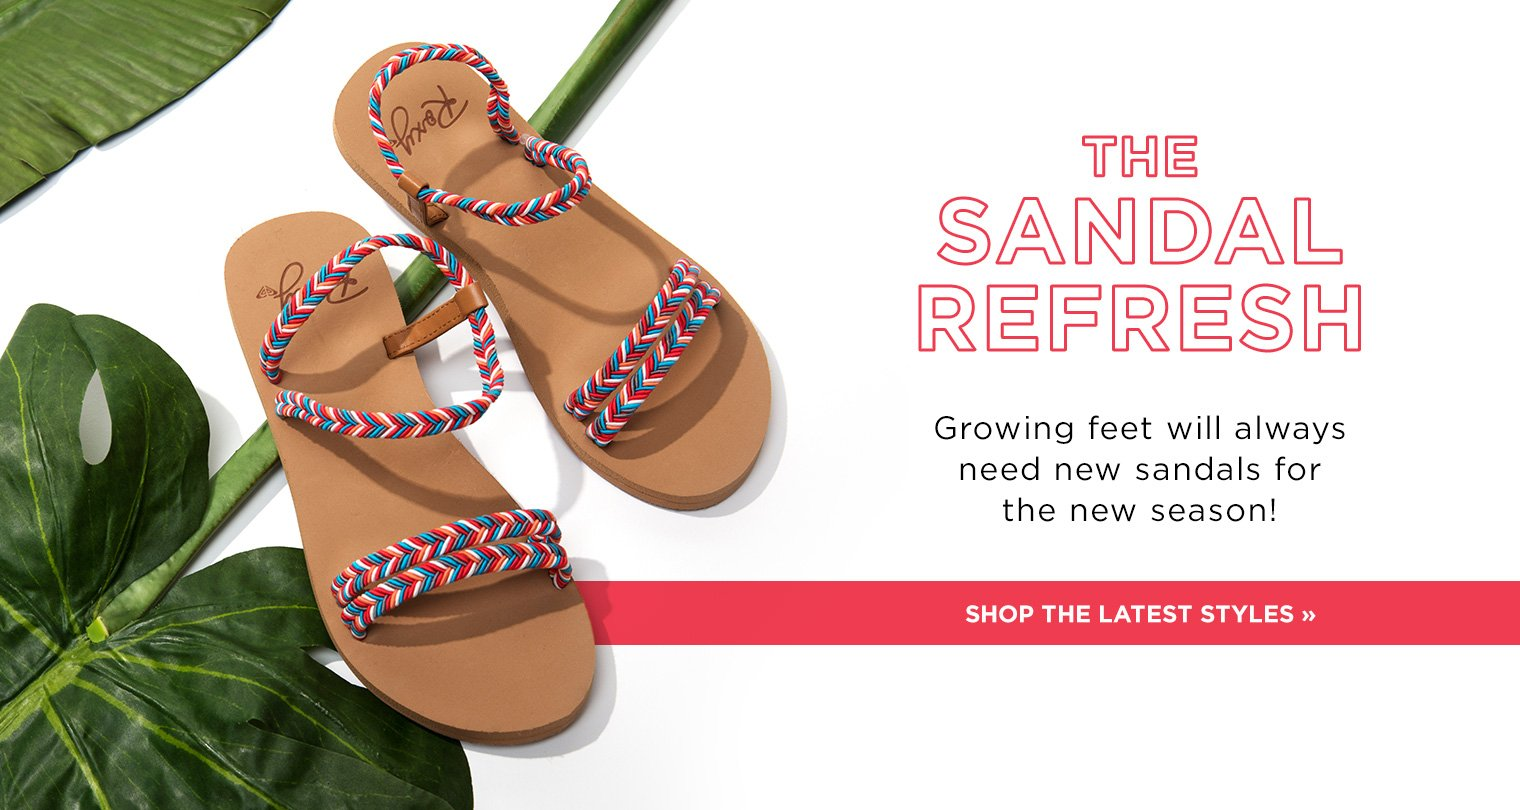 image of girls' sandals calling out new sandals styles